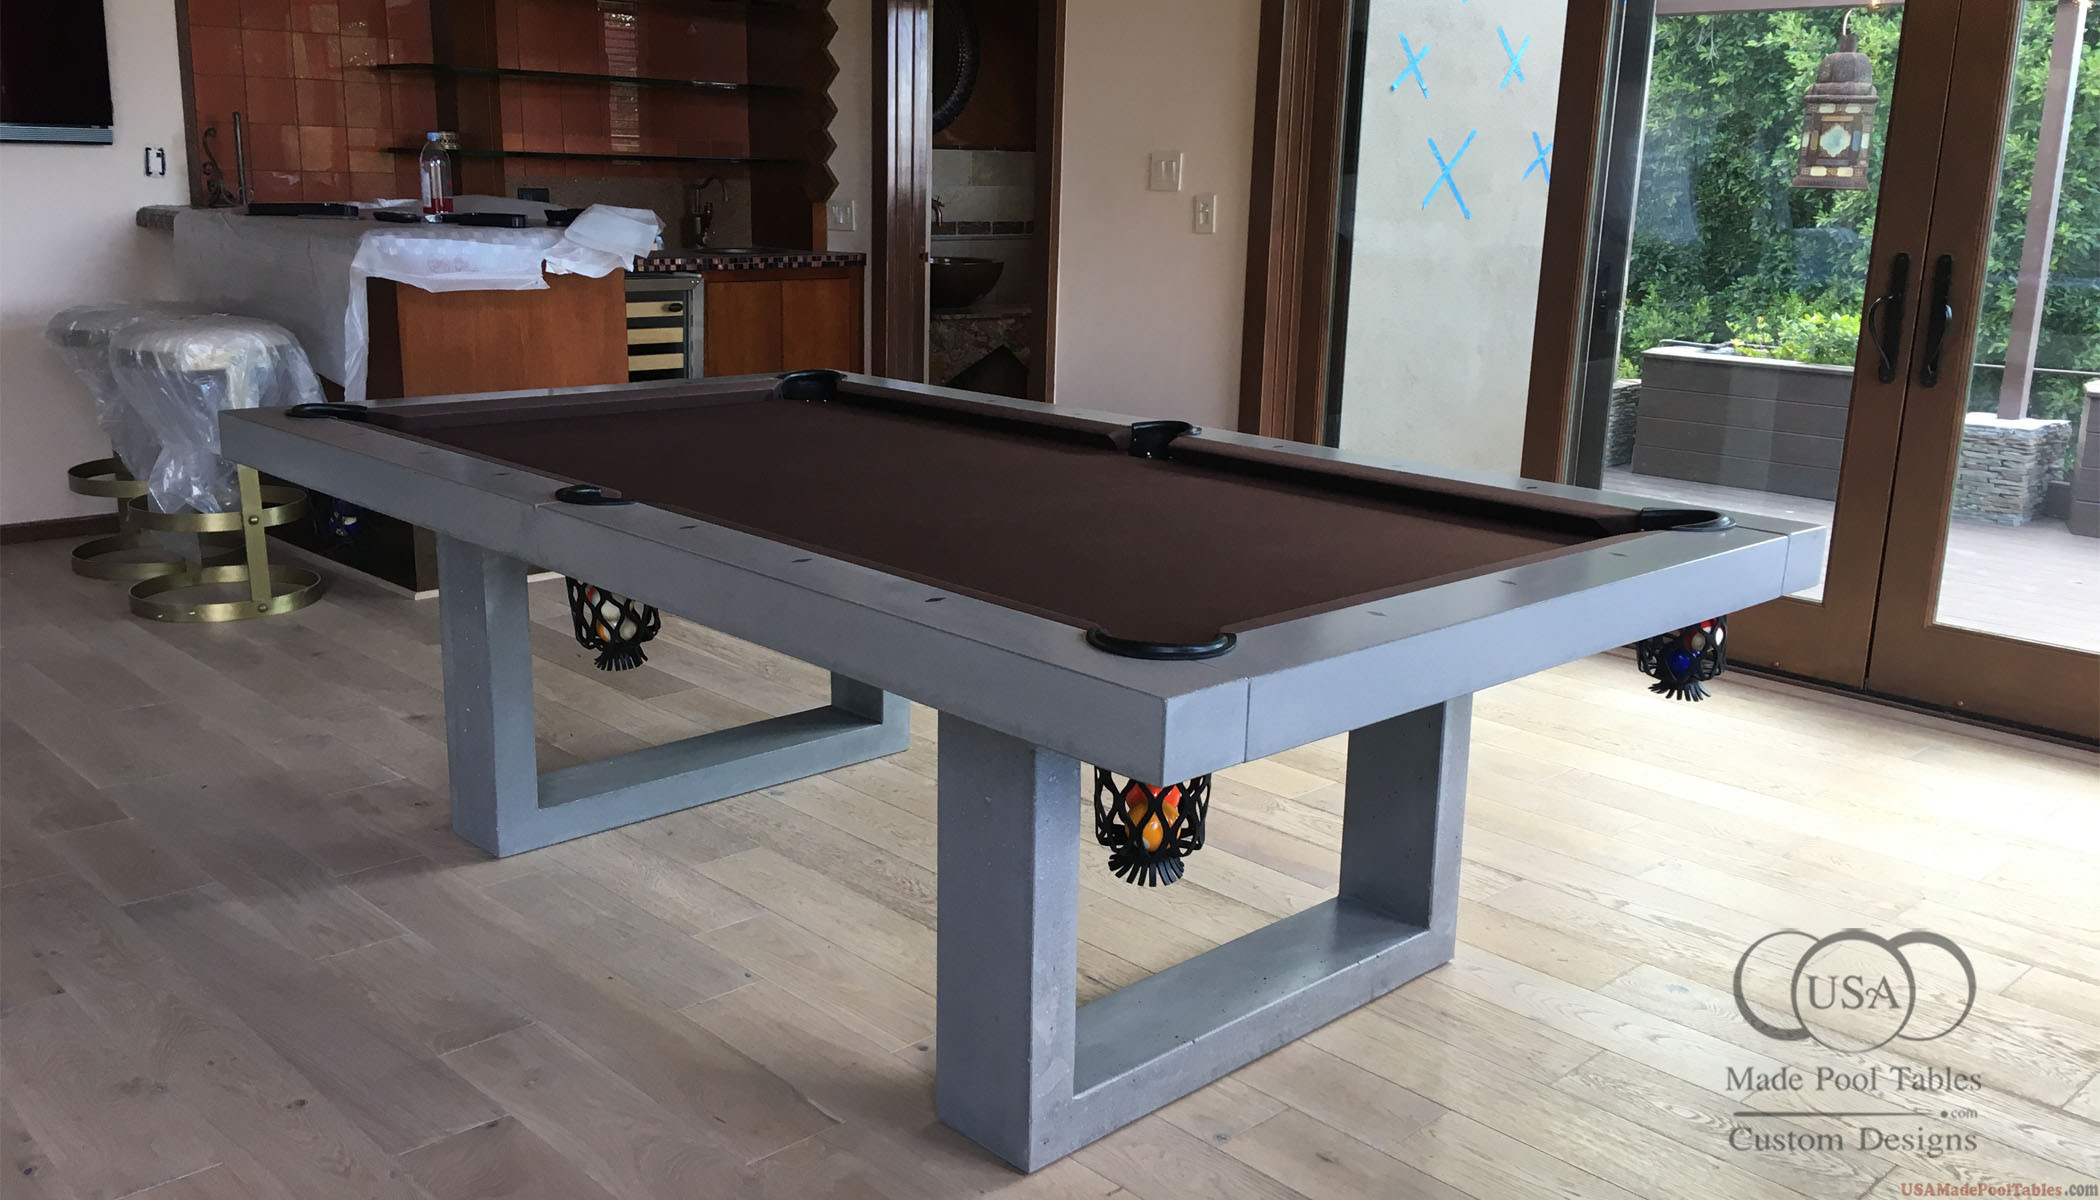 CONCRETE POOL TABLES